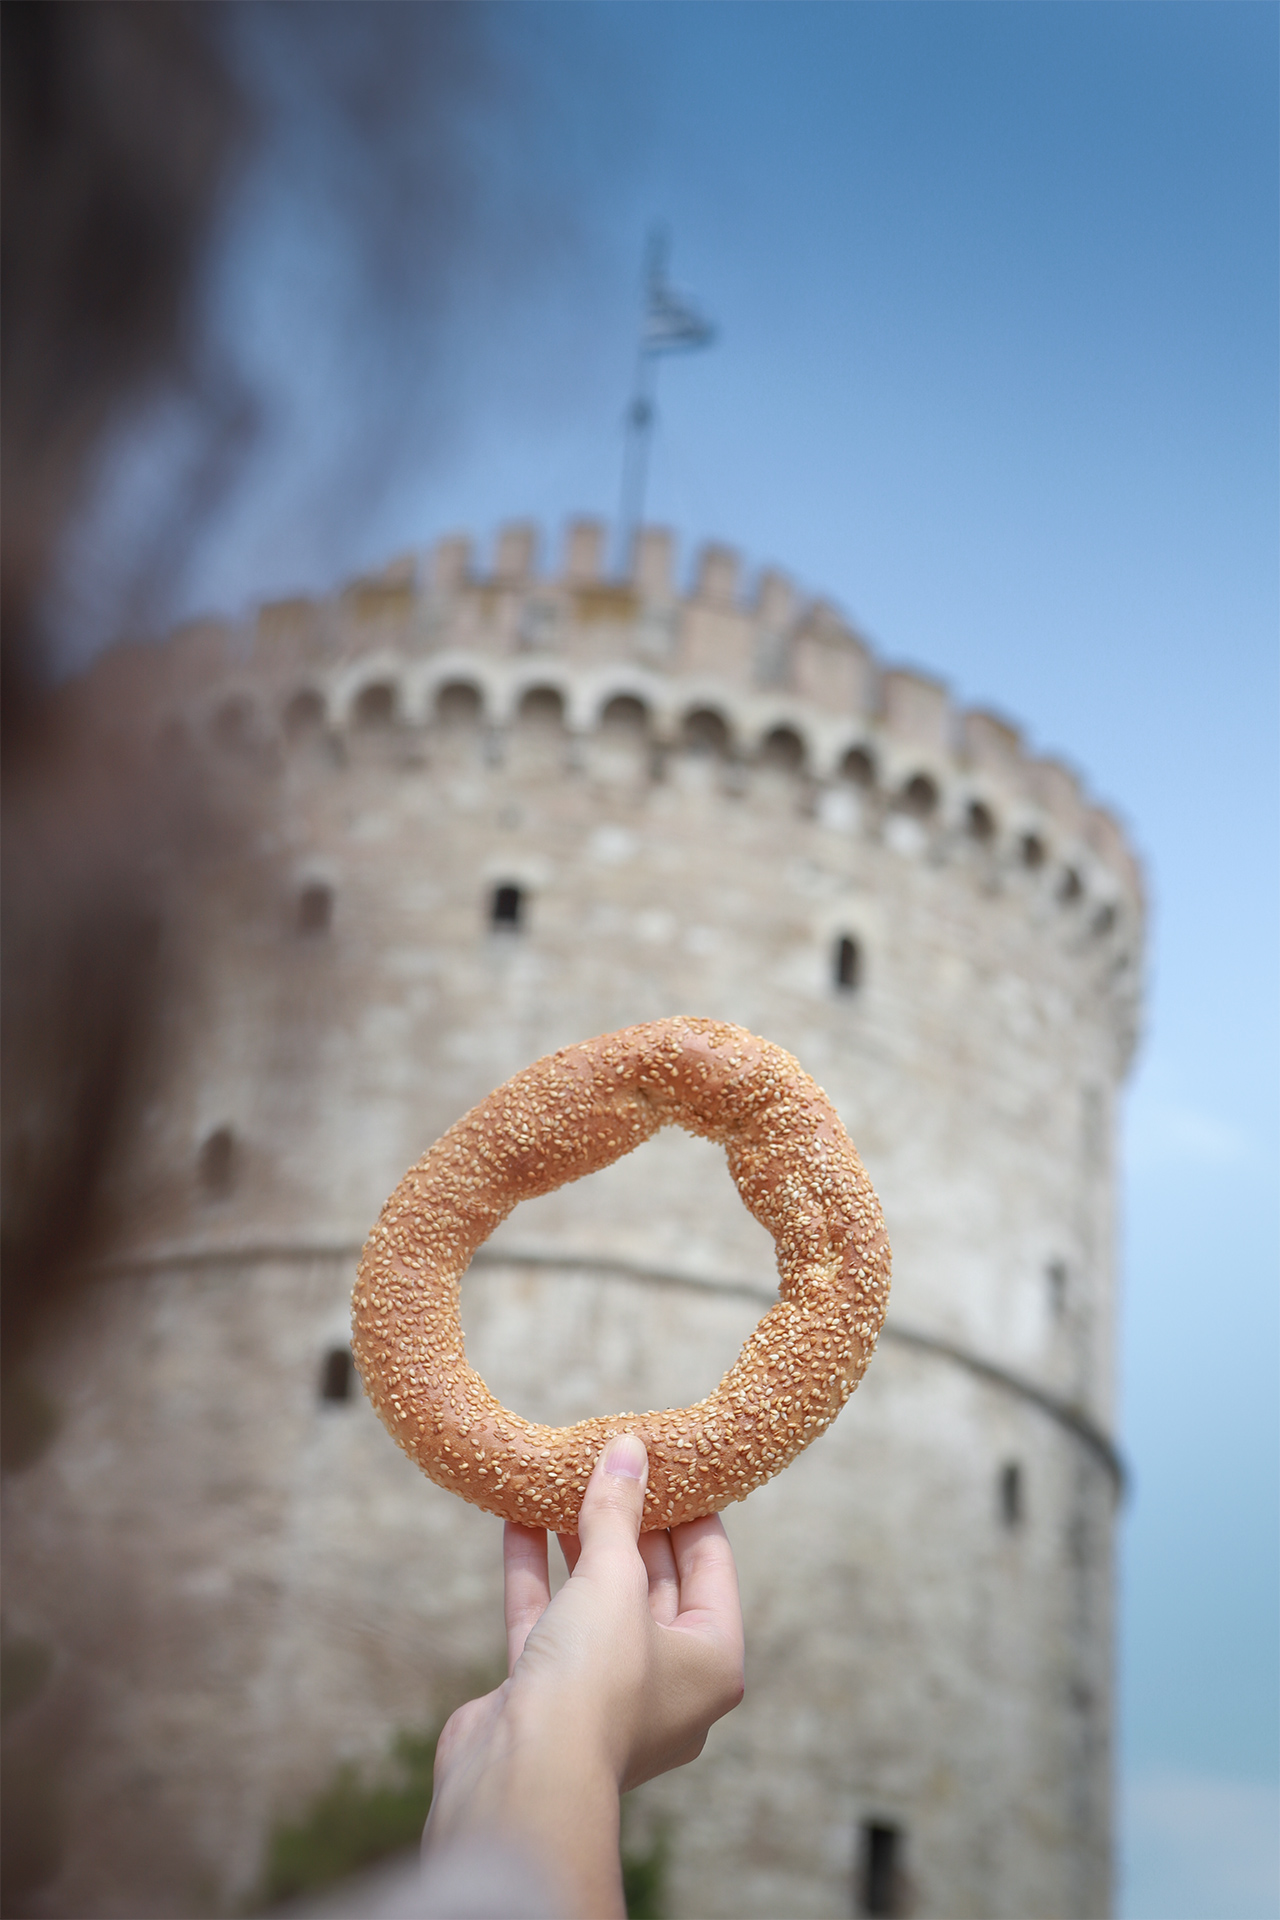 Koulouri, the sesame seed-crusted bread rings are popular all over the country, but they originated here in Thessaloniki